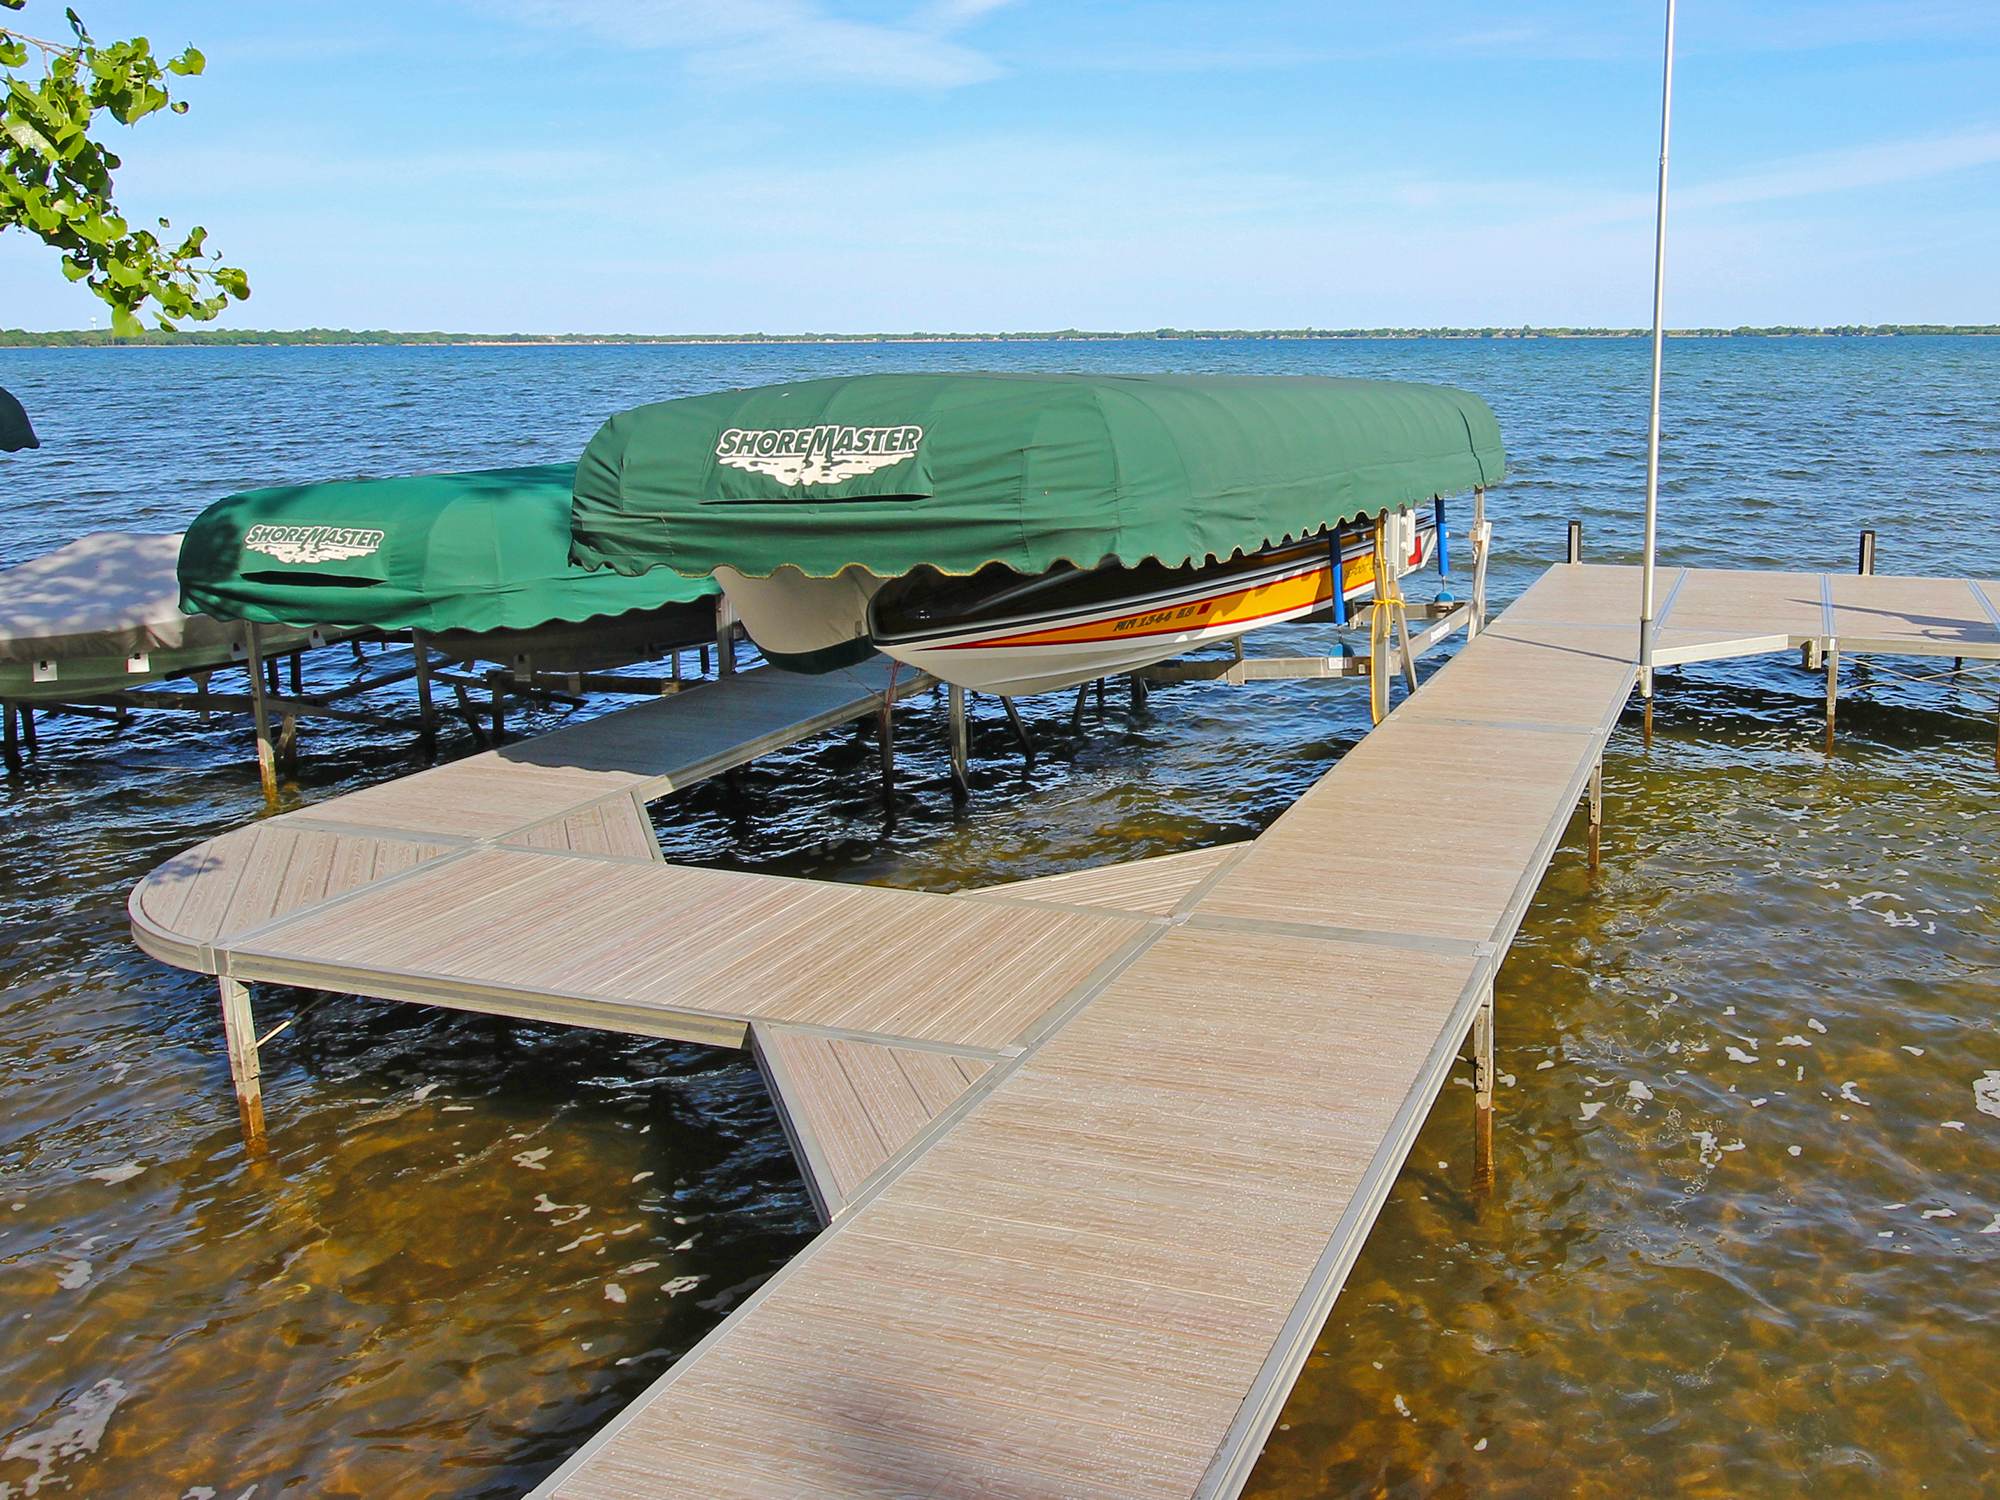 ShoreMaster Infinity RS4 Dock with Gray Oak Woodgrain with Green Canopy Cover